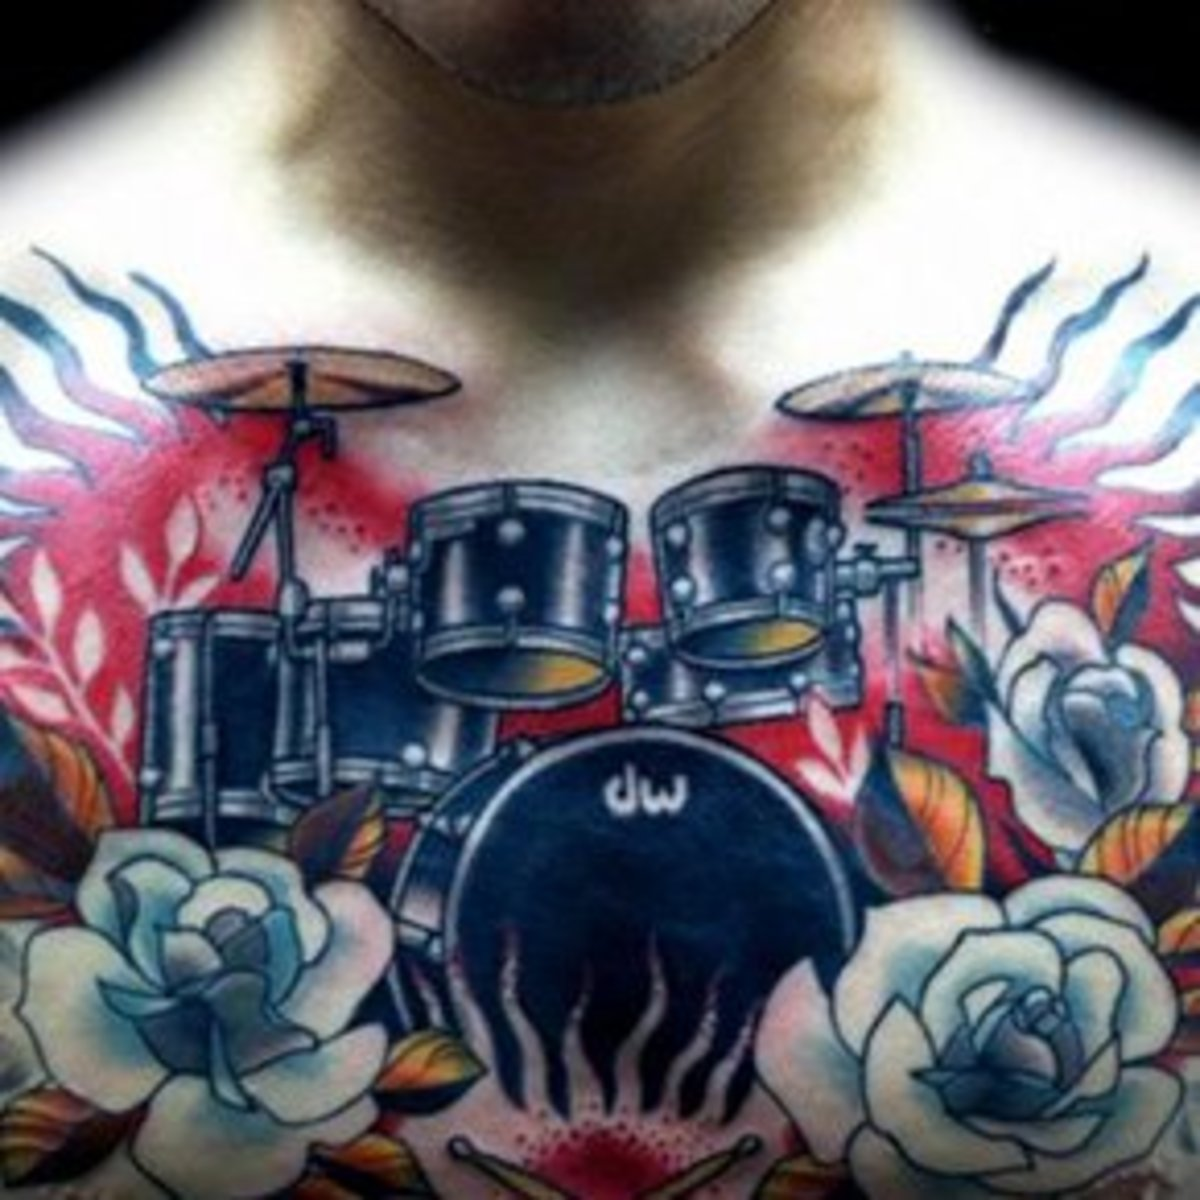 9 music tattoos that will rock your world - tattoo ideas, artists